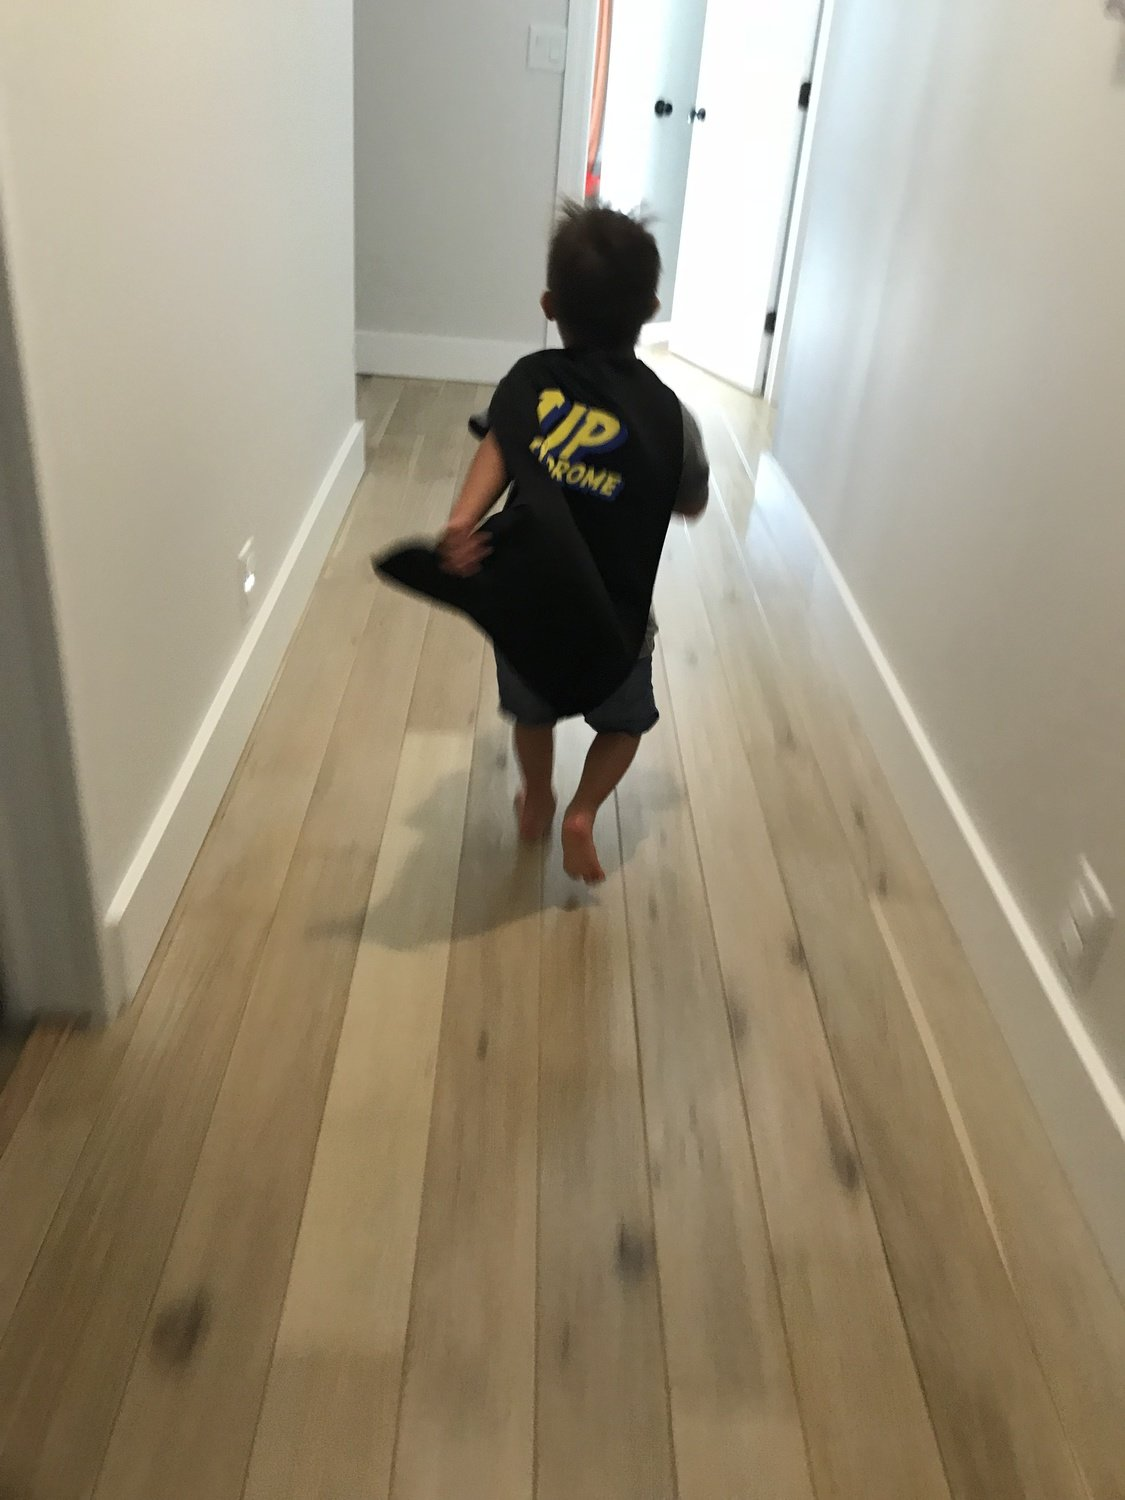 Up Syndrome Cape